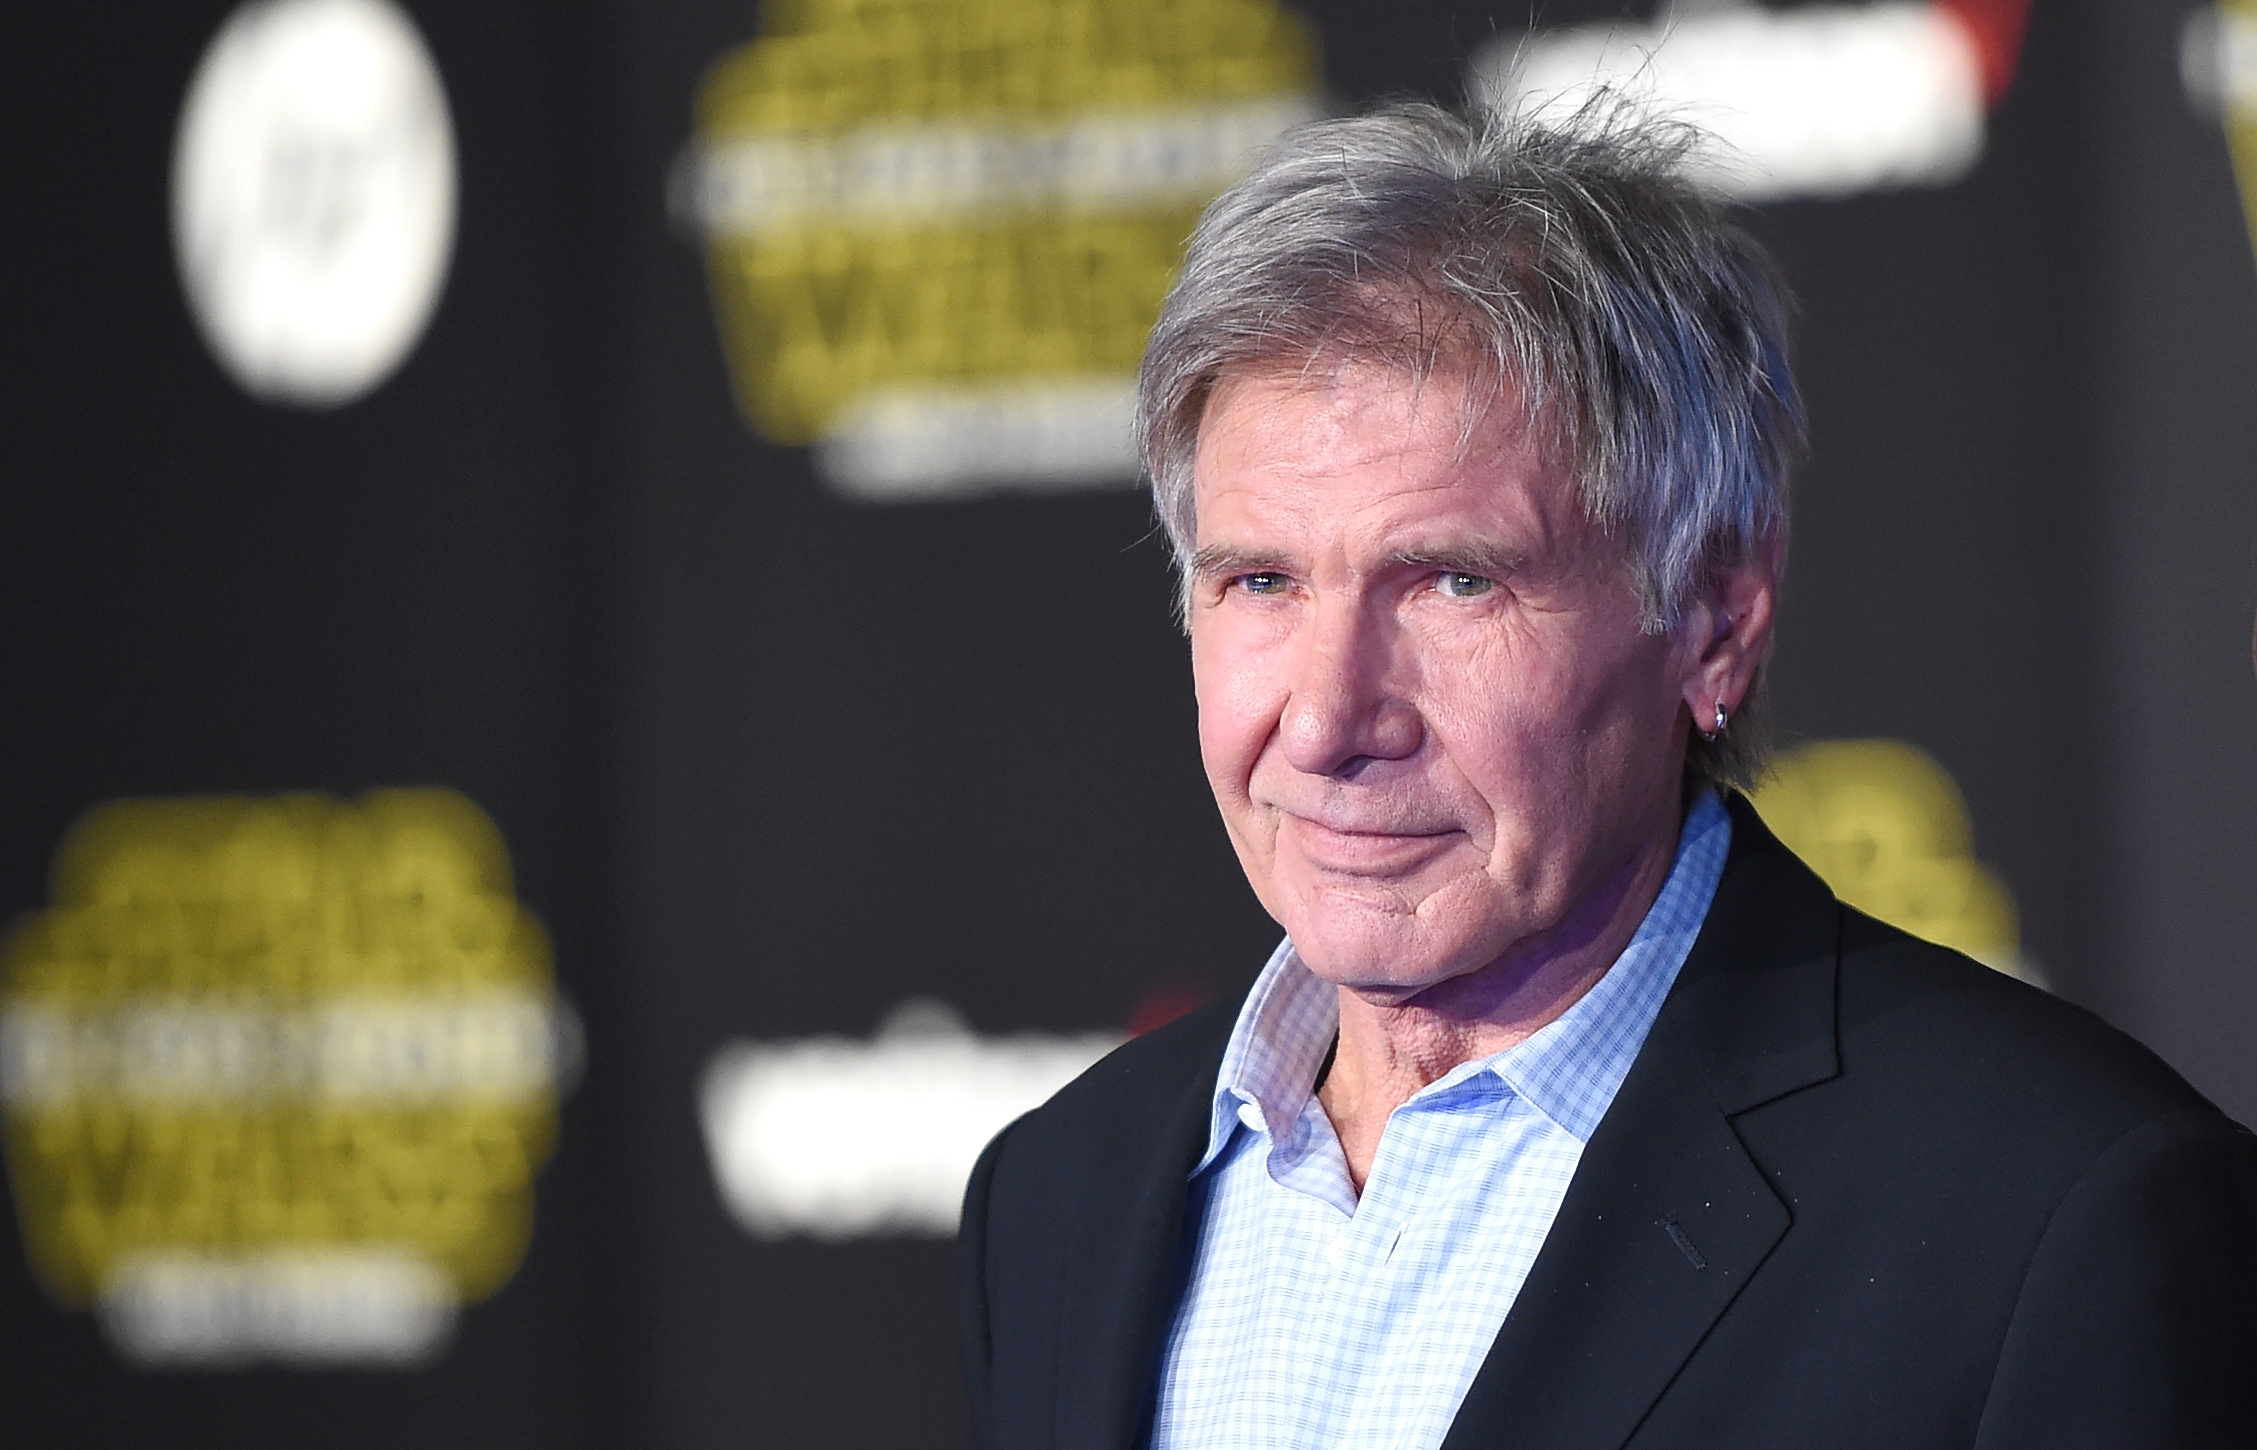 Harrison Ford 'shocked and saddened' by news of Carrie Fisher's heart attack